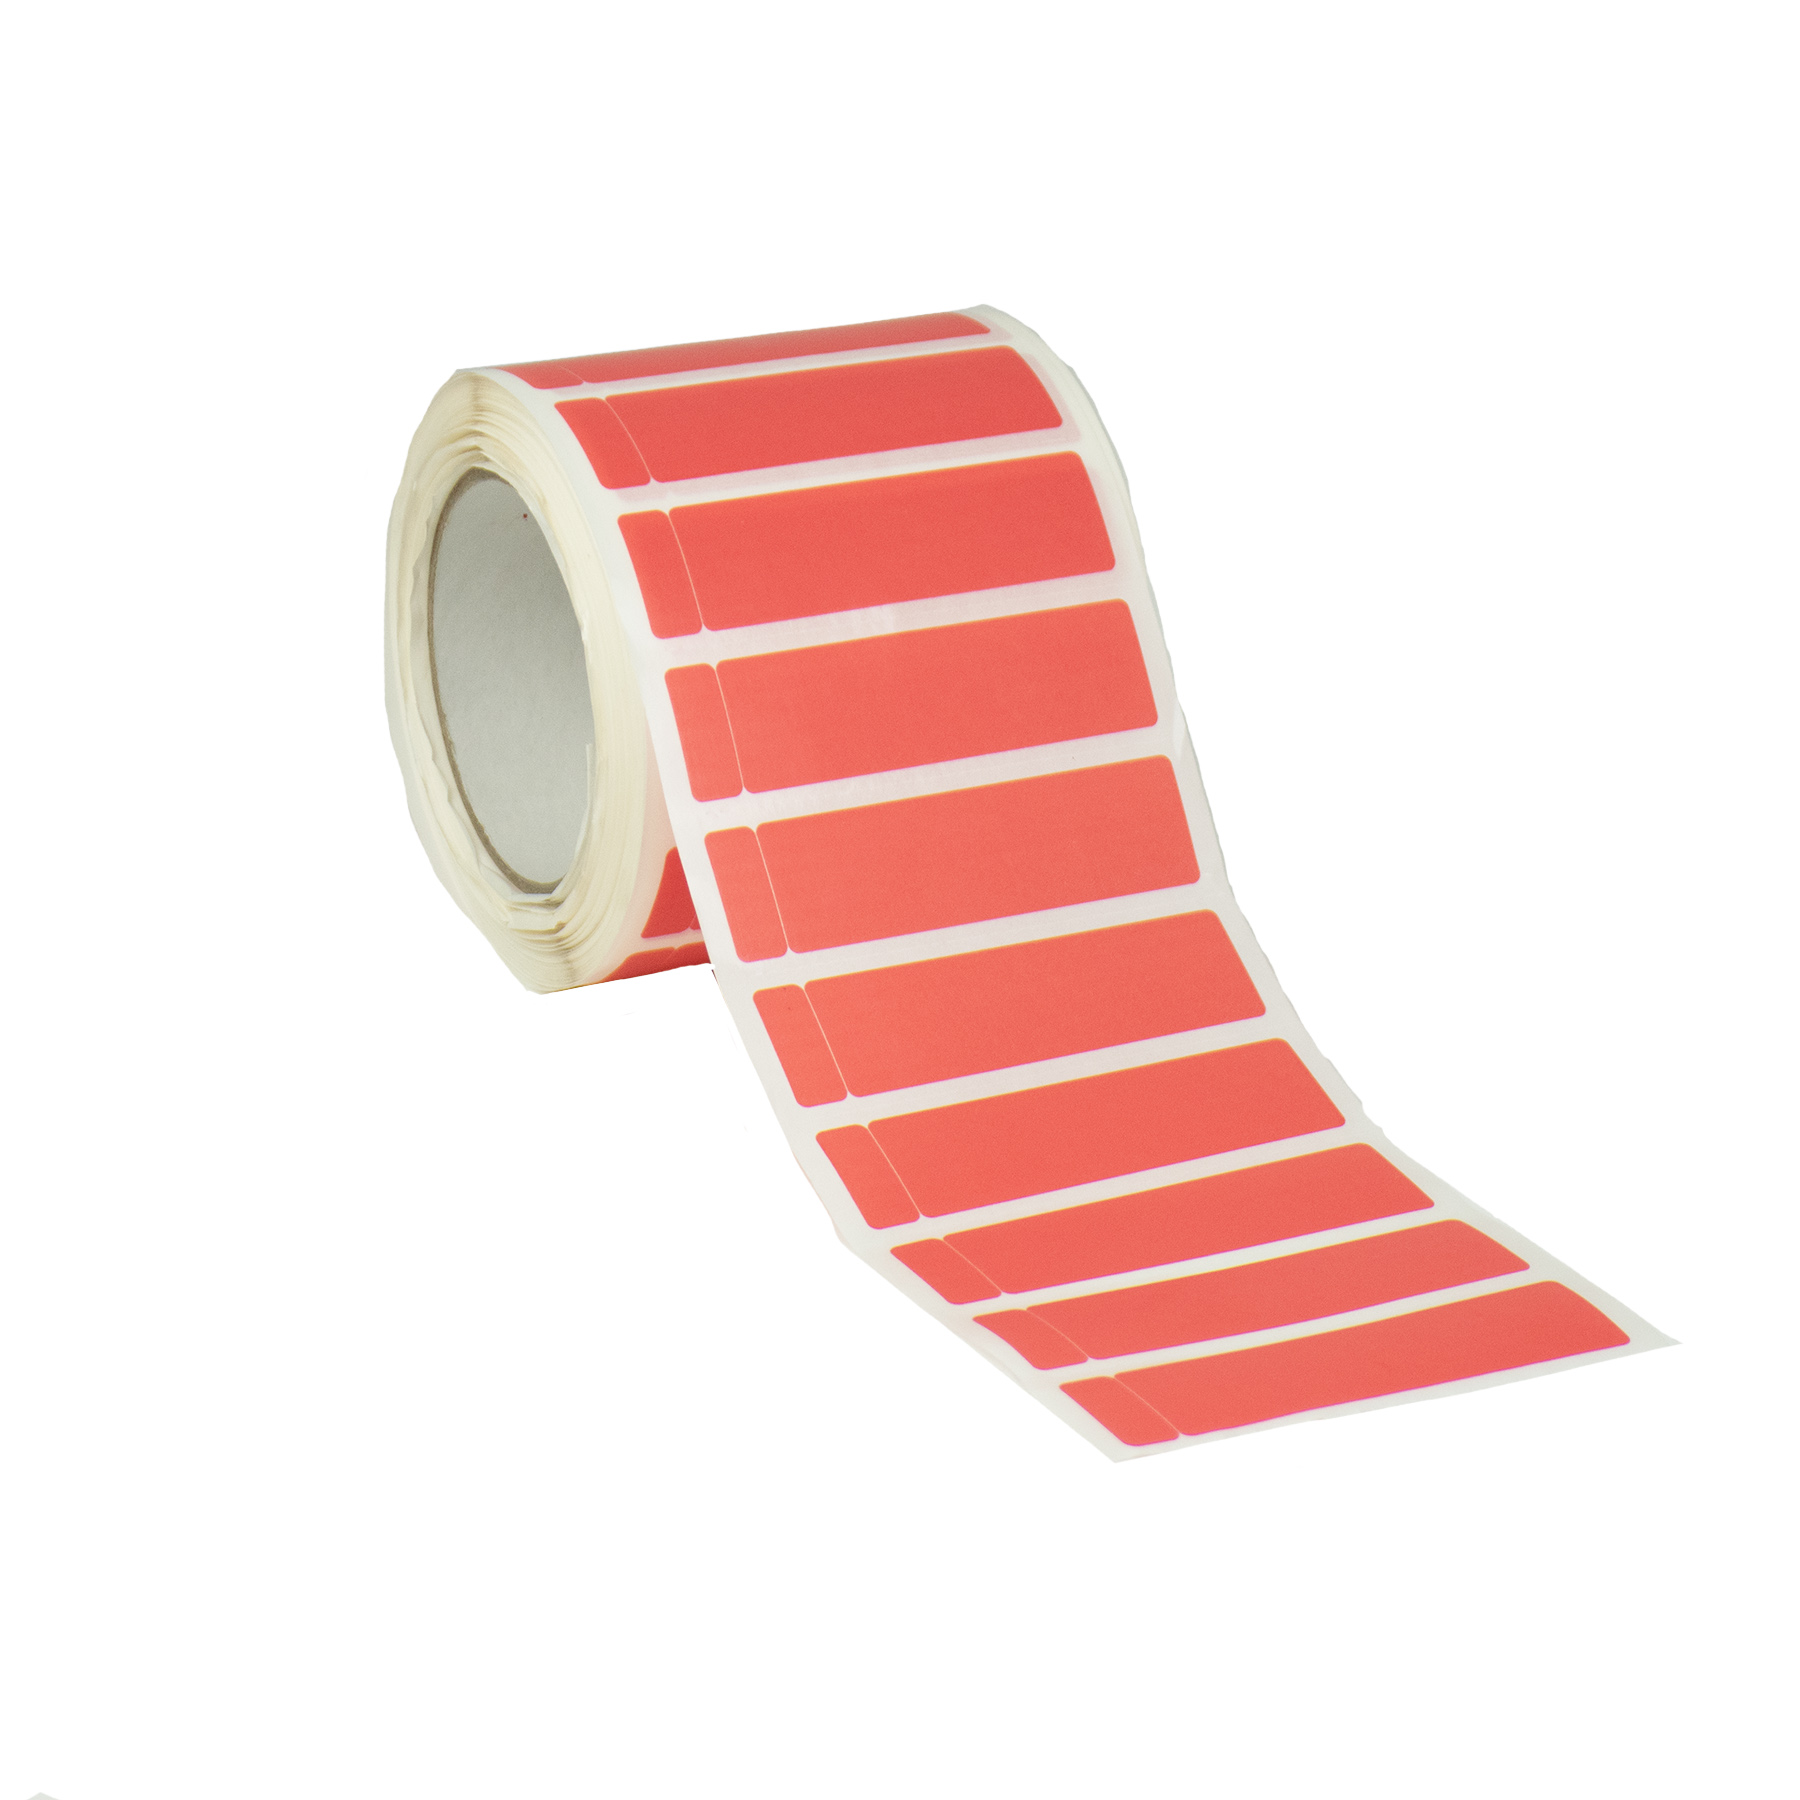 Permenant red tamper evident security labels with DNT